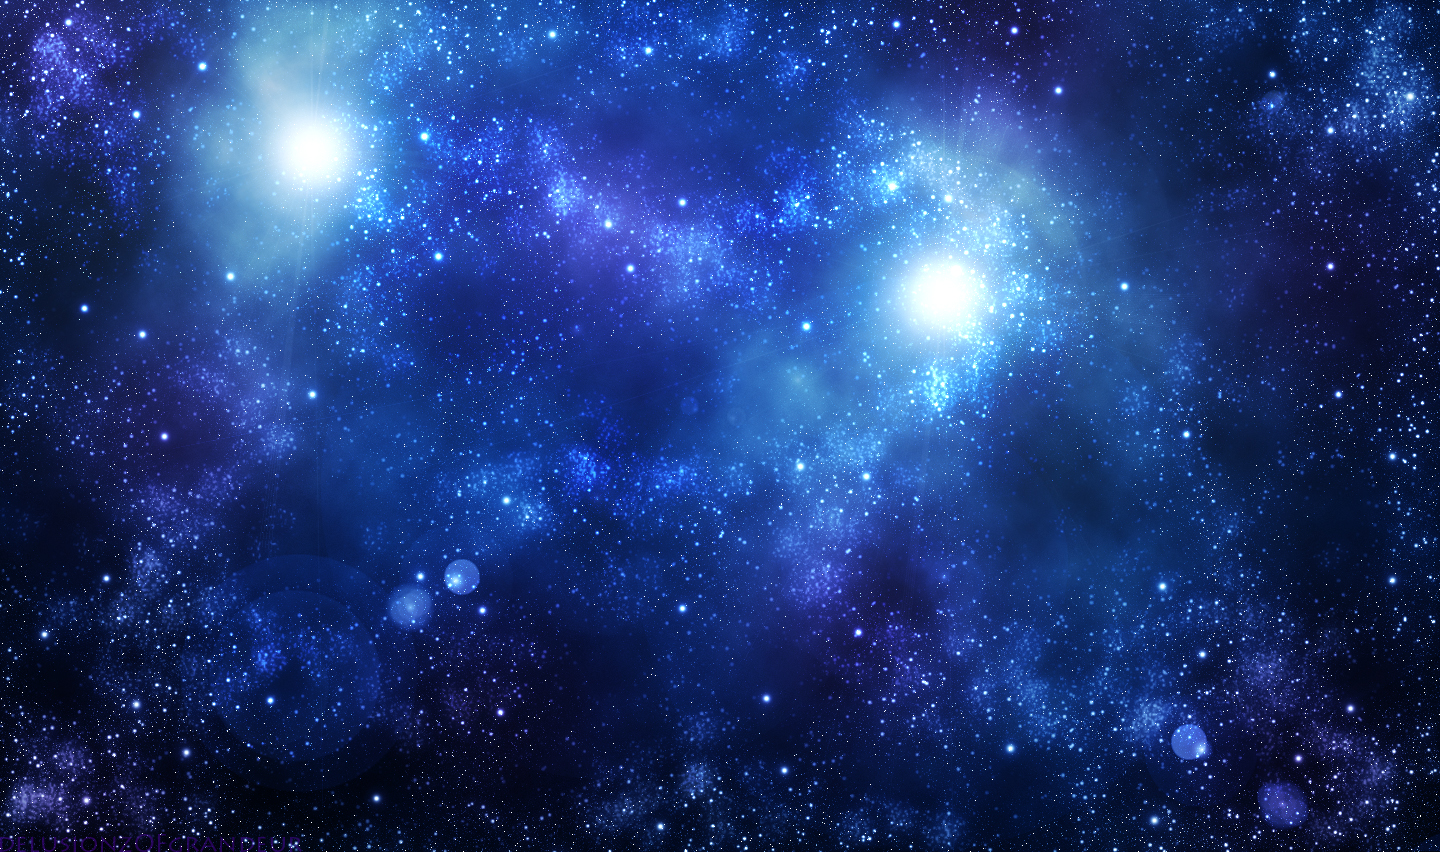 Space Galaxy HD Wallpapers – wallpaper202